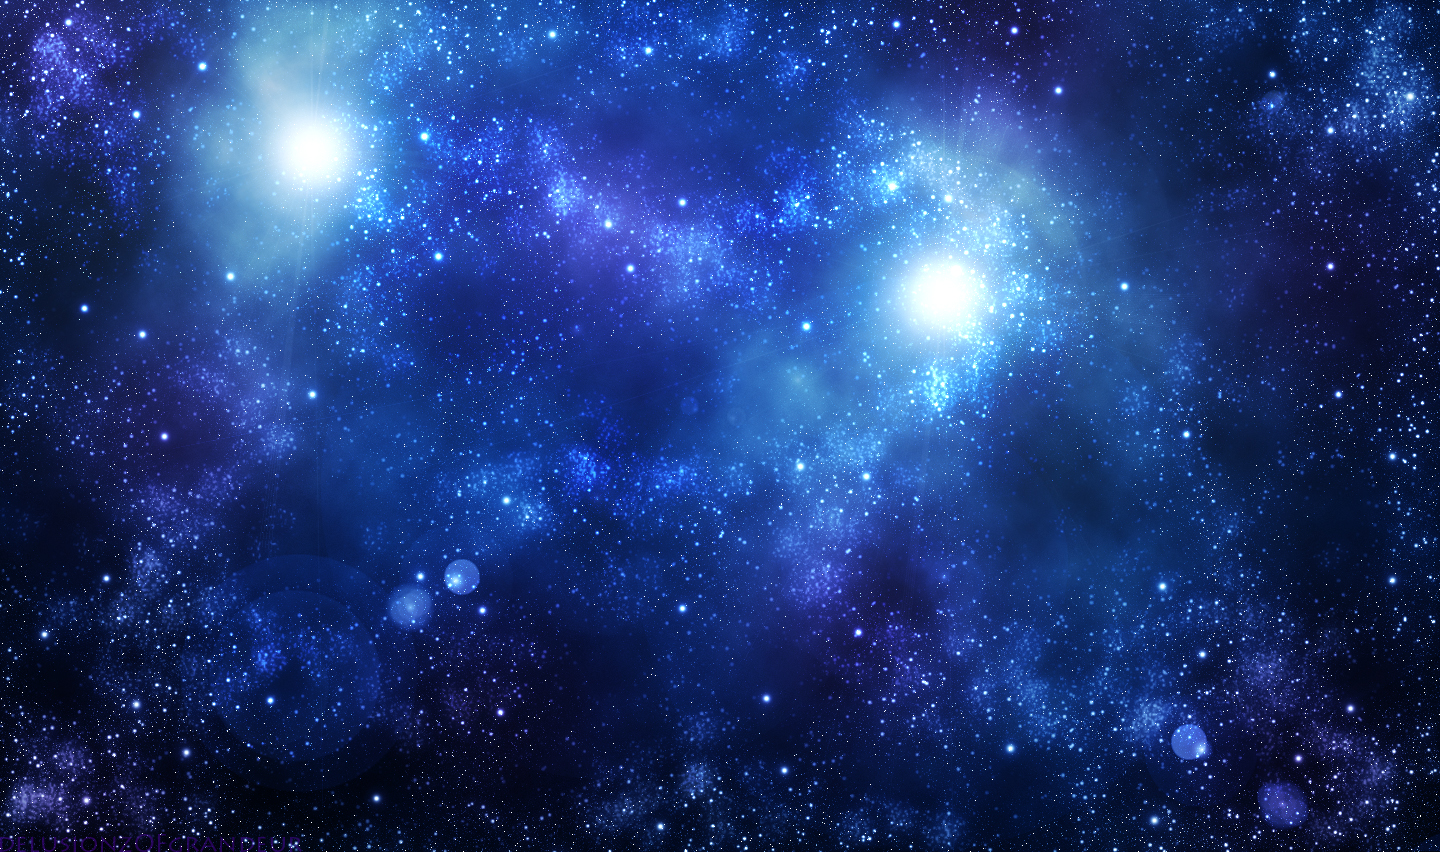 Space Galaxy HD Wallpapers – wallpaper202